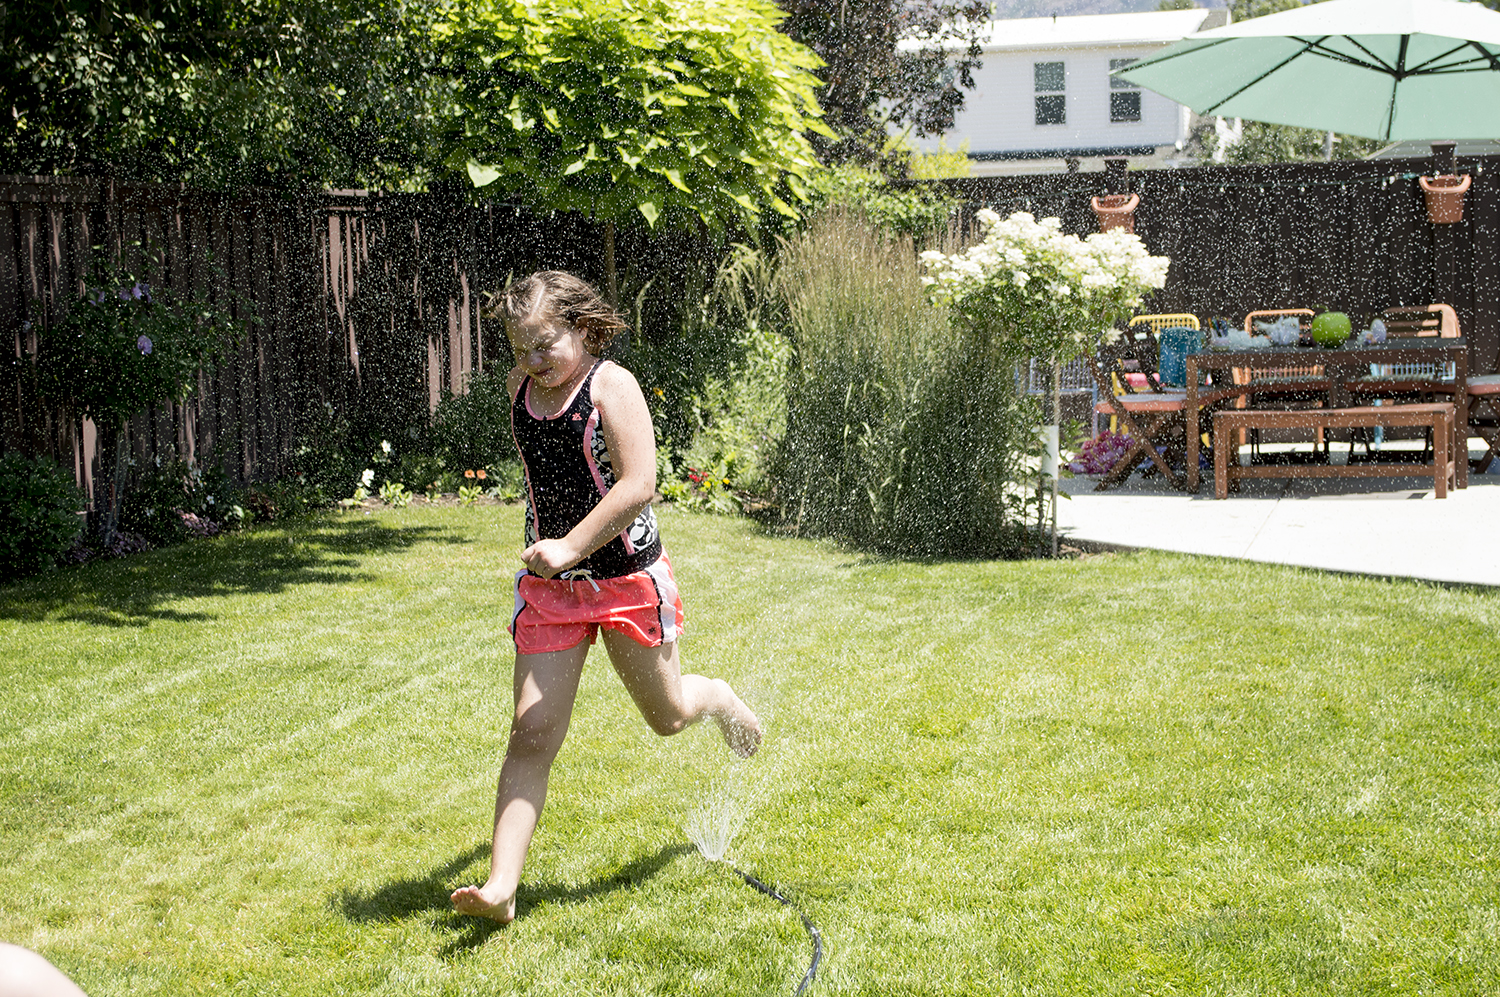 Marisa running in the sprinkler.